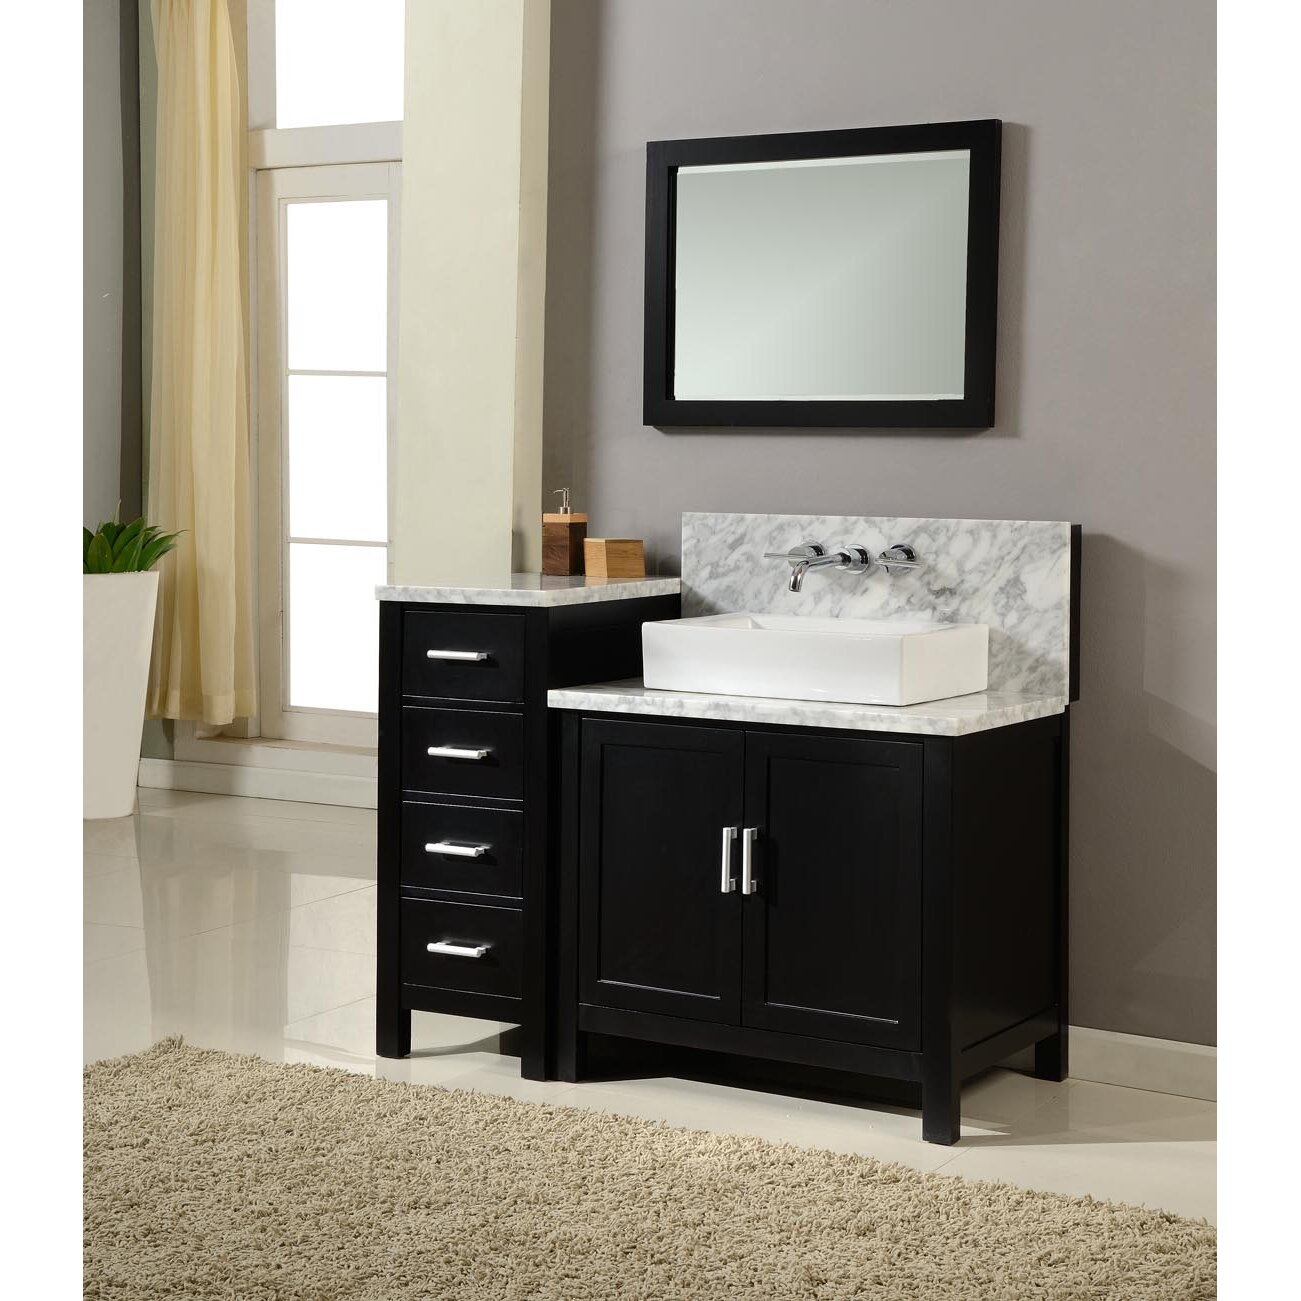 Bathroom sink and mirror - Horizon 84 Double Premium Bathroom Vanity Set With Mirror